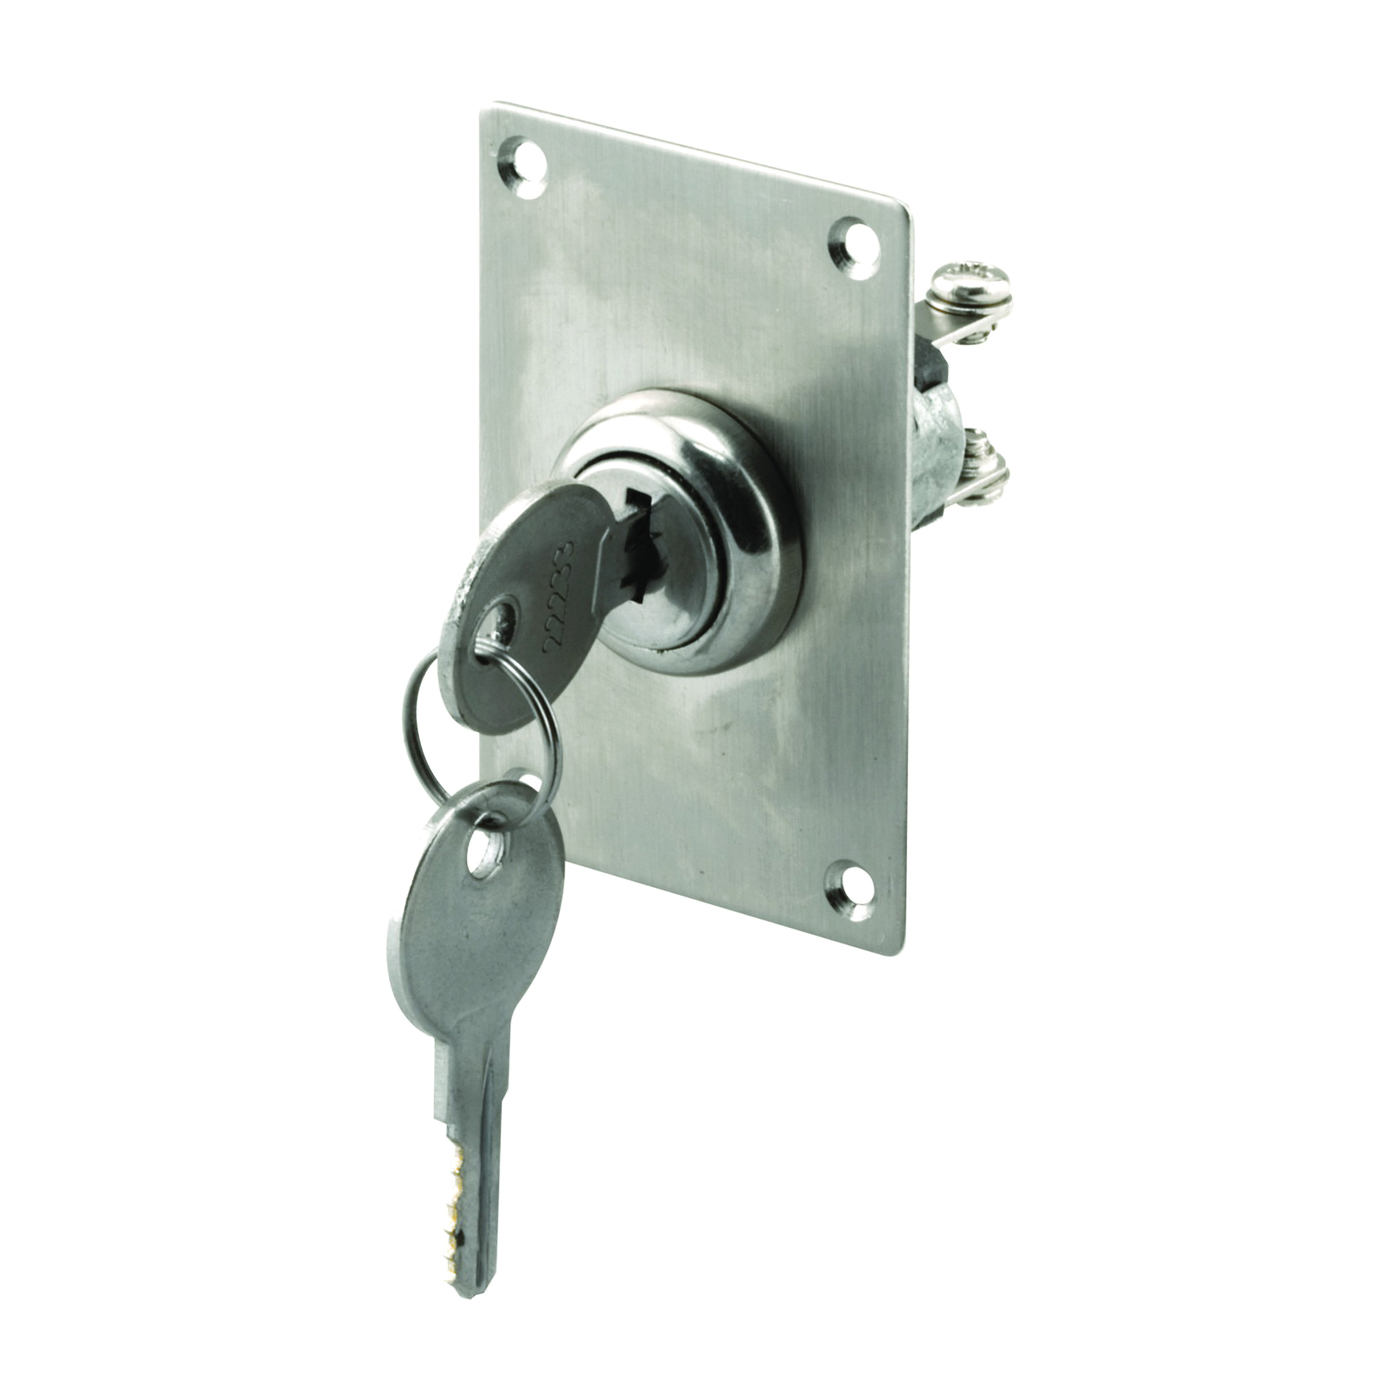 Picture of Prime-Line GD 52142 Electric Key Switch, Plastic